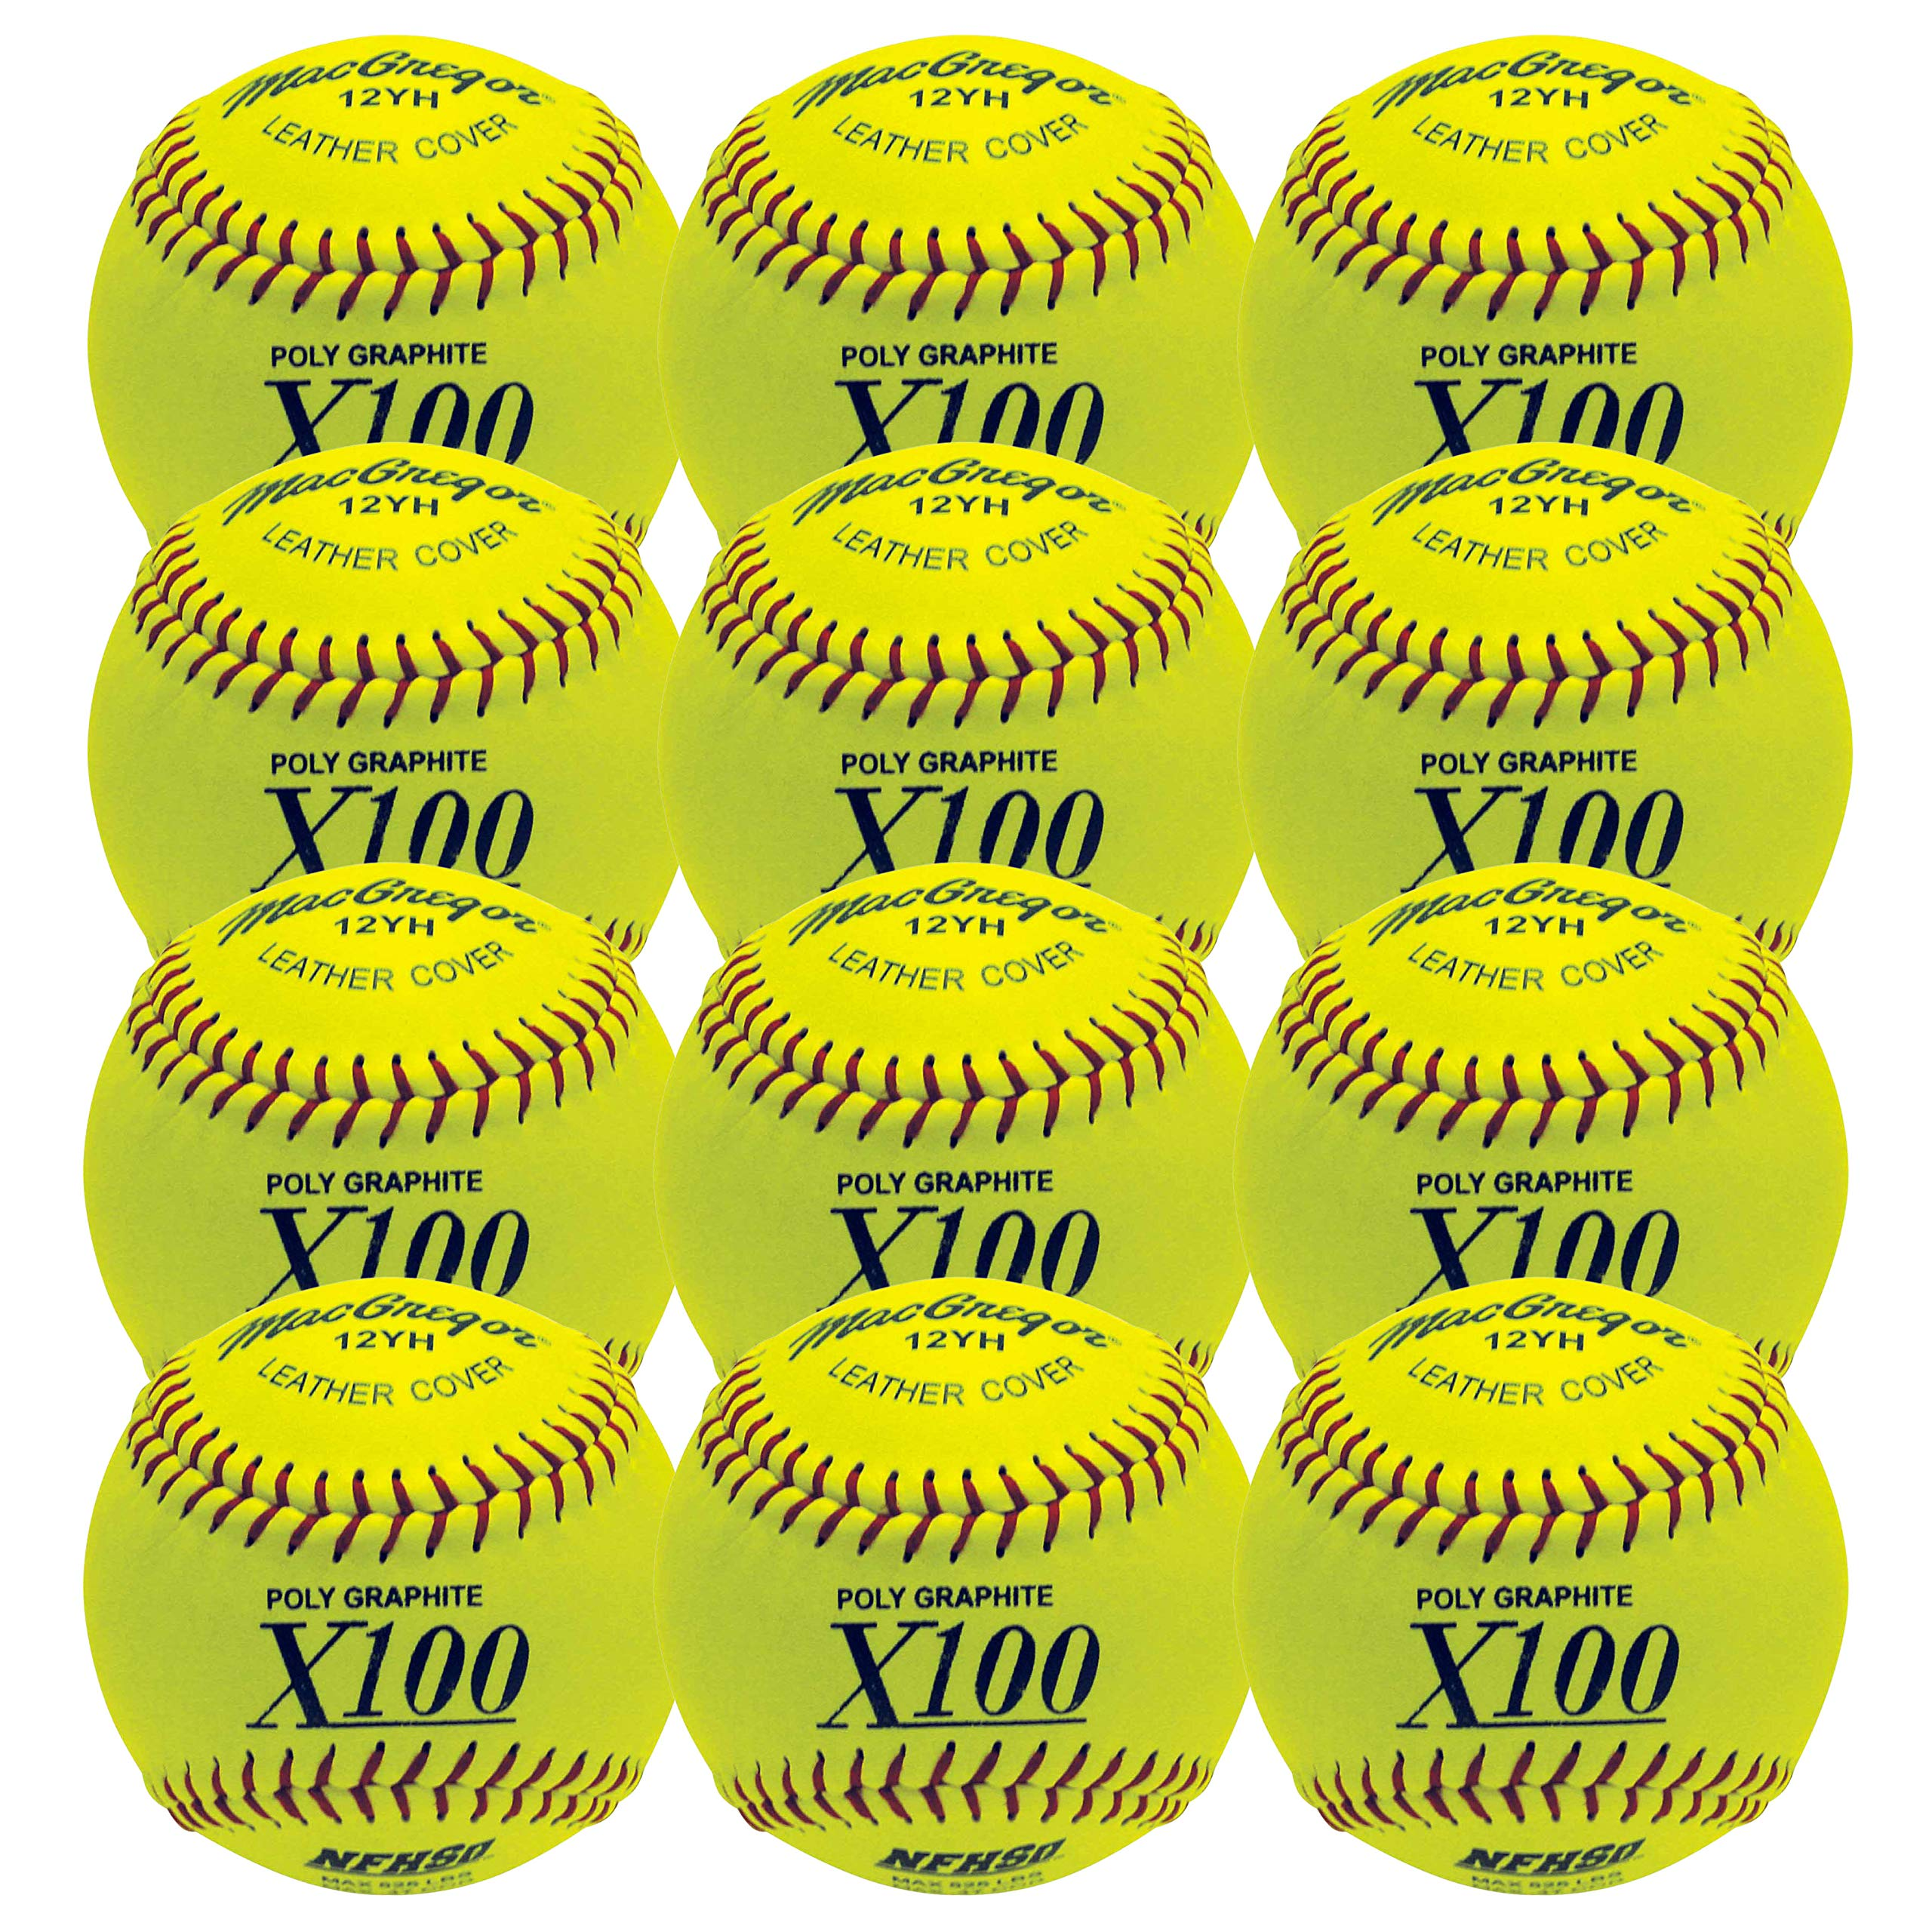 MacGregor NFHS Fast Pitch Softball, 12-inch (One Dozen) - Ctfitnesswear